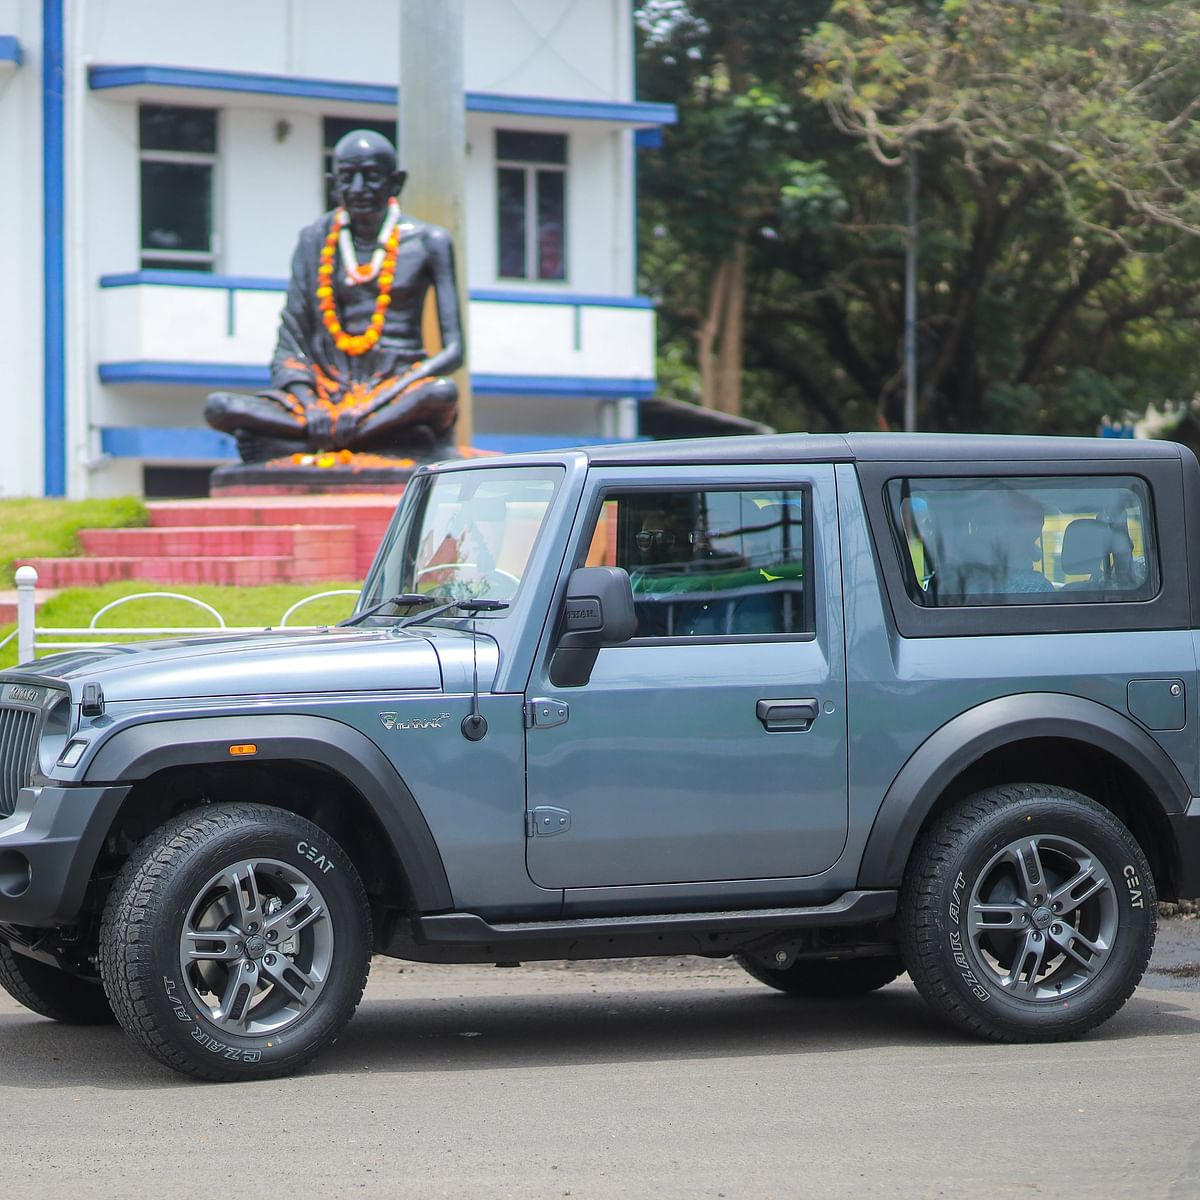 Mahindra Thar SUV 2020: All you need to know about the iconic 4x4 turned SUV